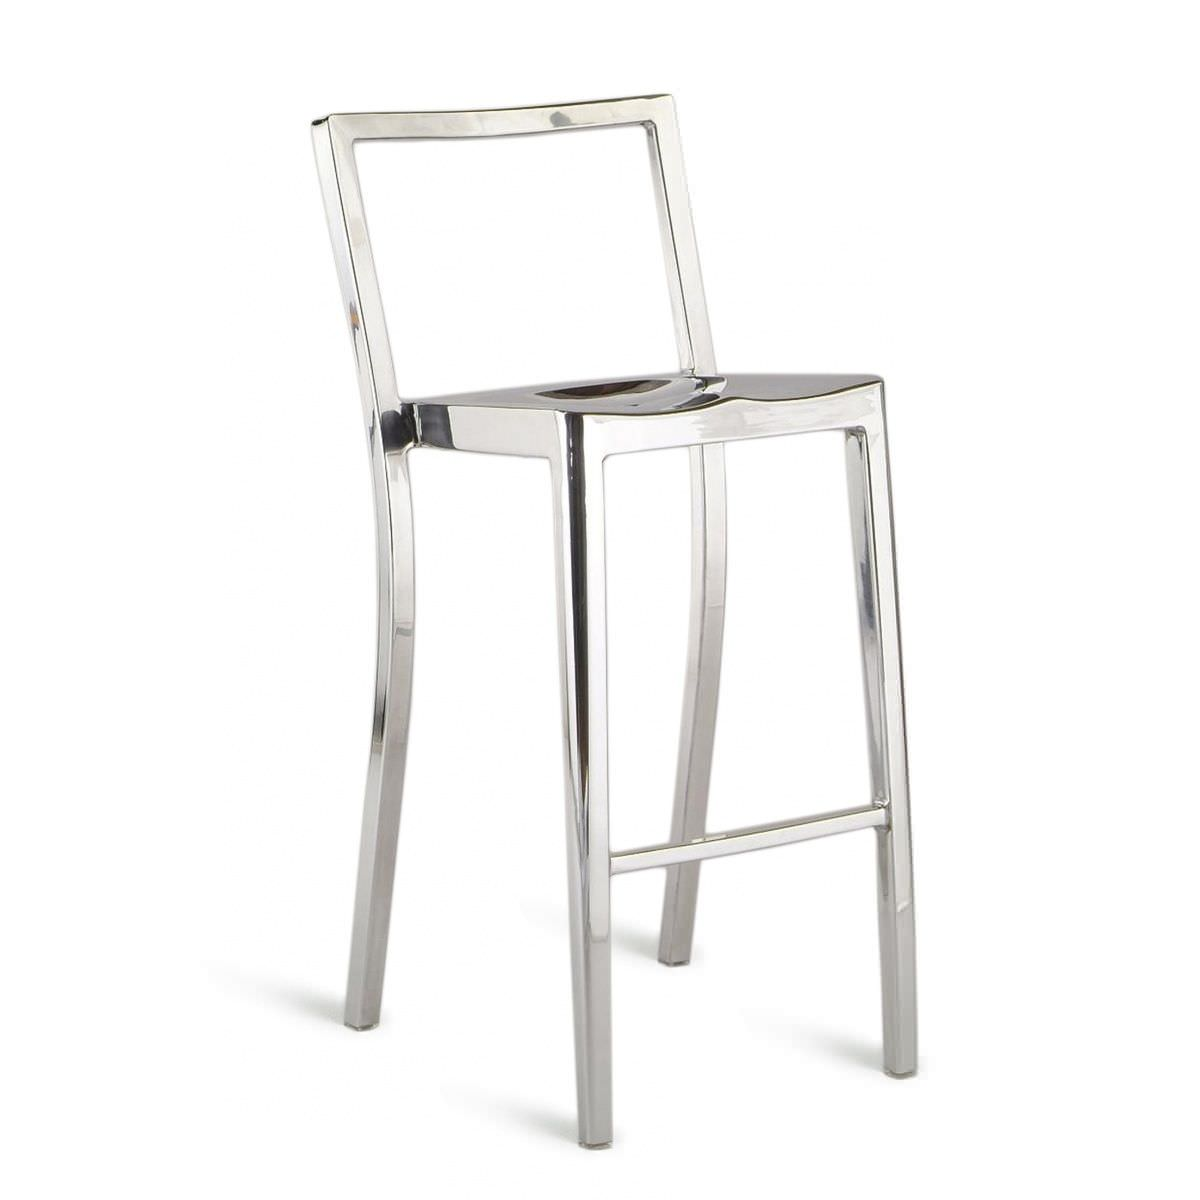 Tabourets Bar Empilables Tabouret De Bar Contemporain En Aluminium Professionnel